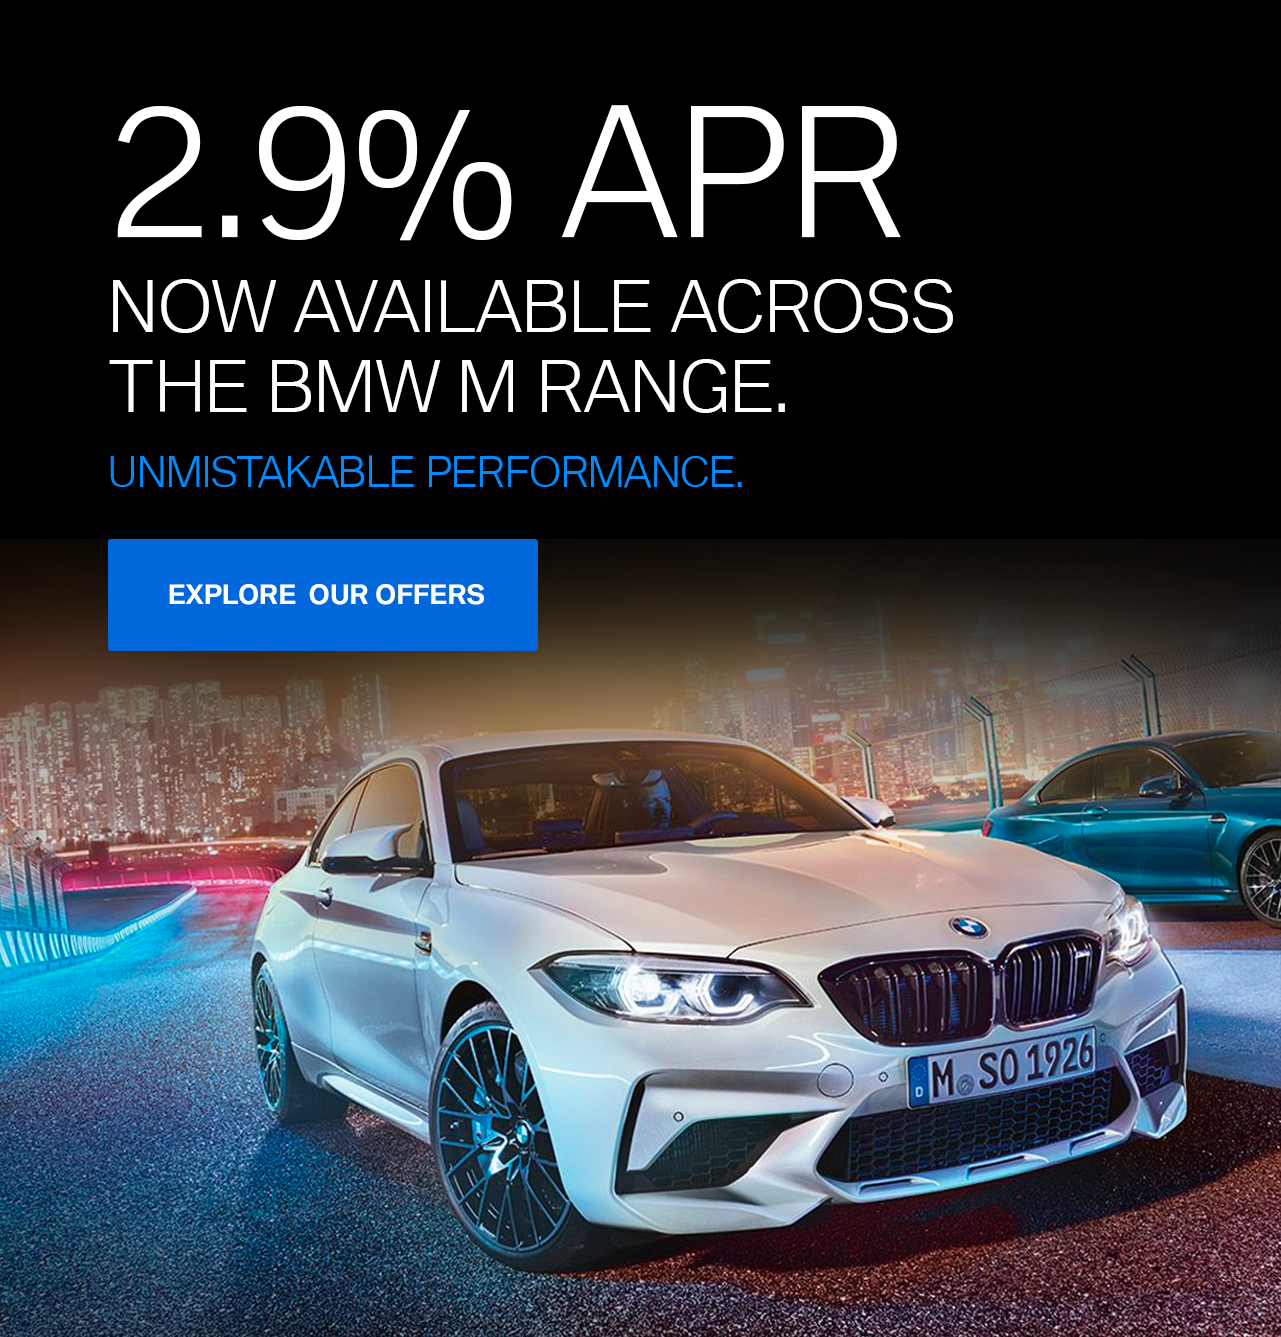 BMW M Range Offers